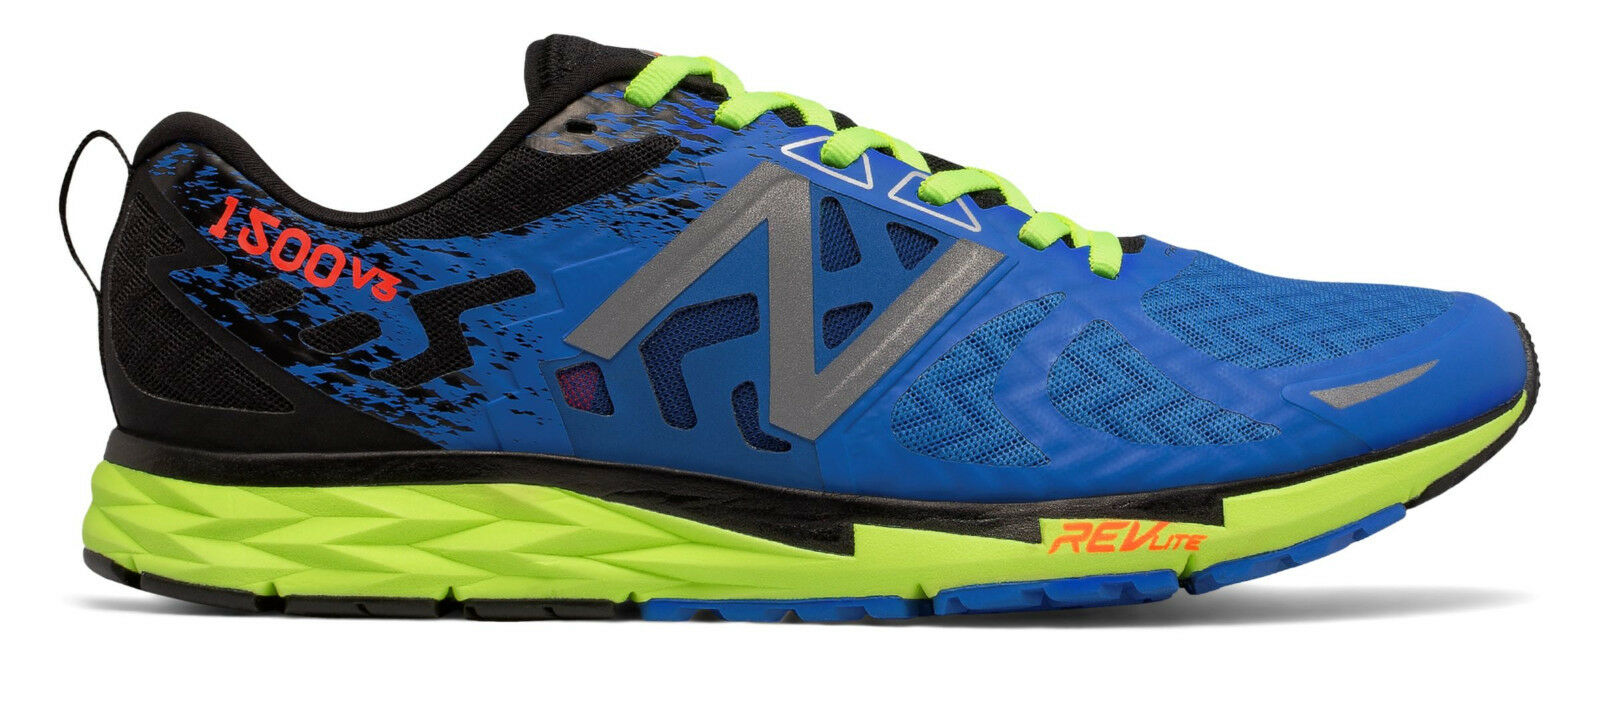 NEW BALANCE M1500BG3 Running Shoes, Men`s Size 11.5 Wide, ElectricBlue/Lime, NEW